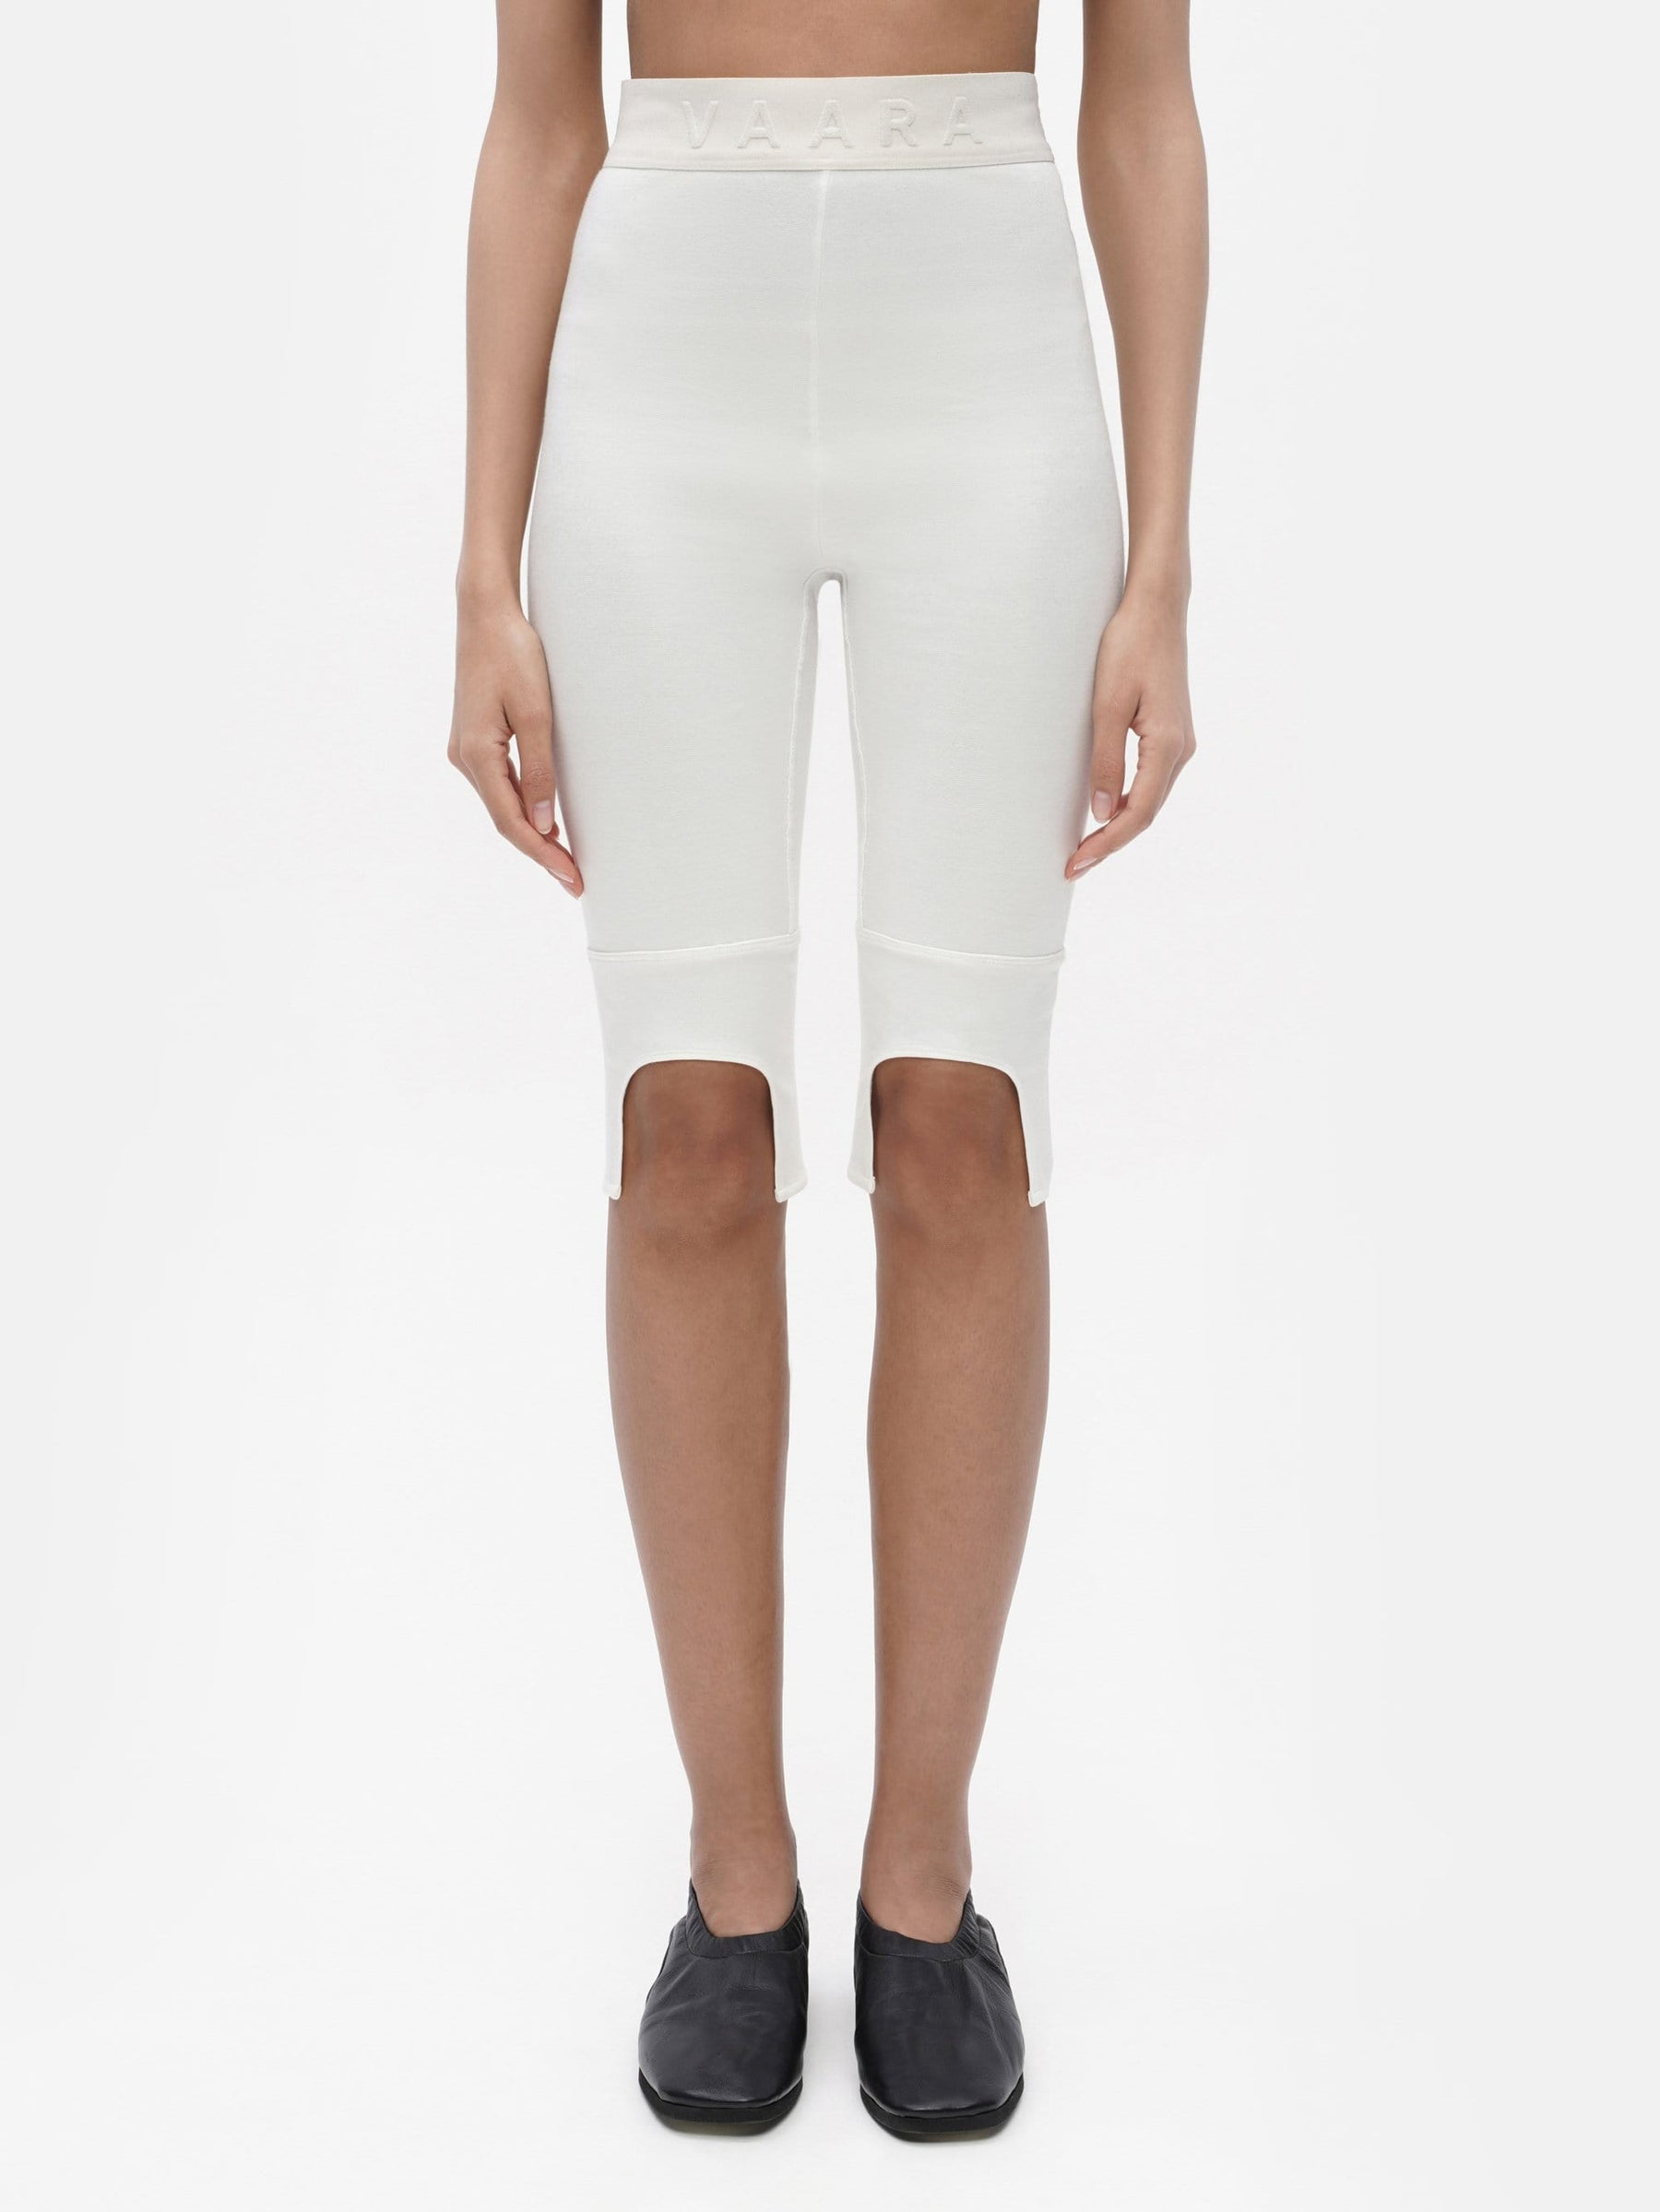 Everyday Knee Length Legging White